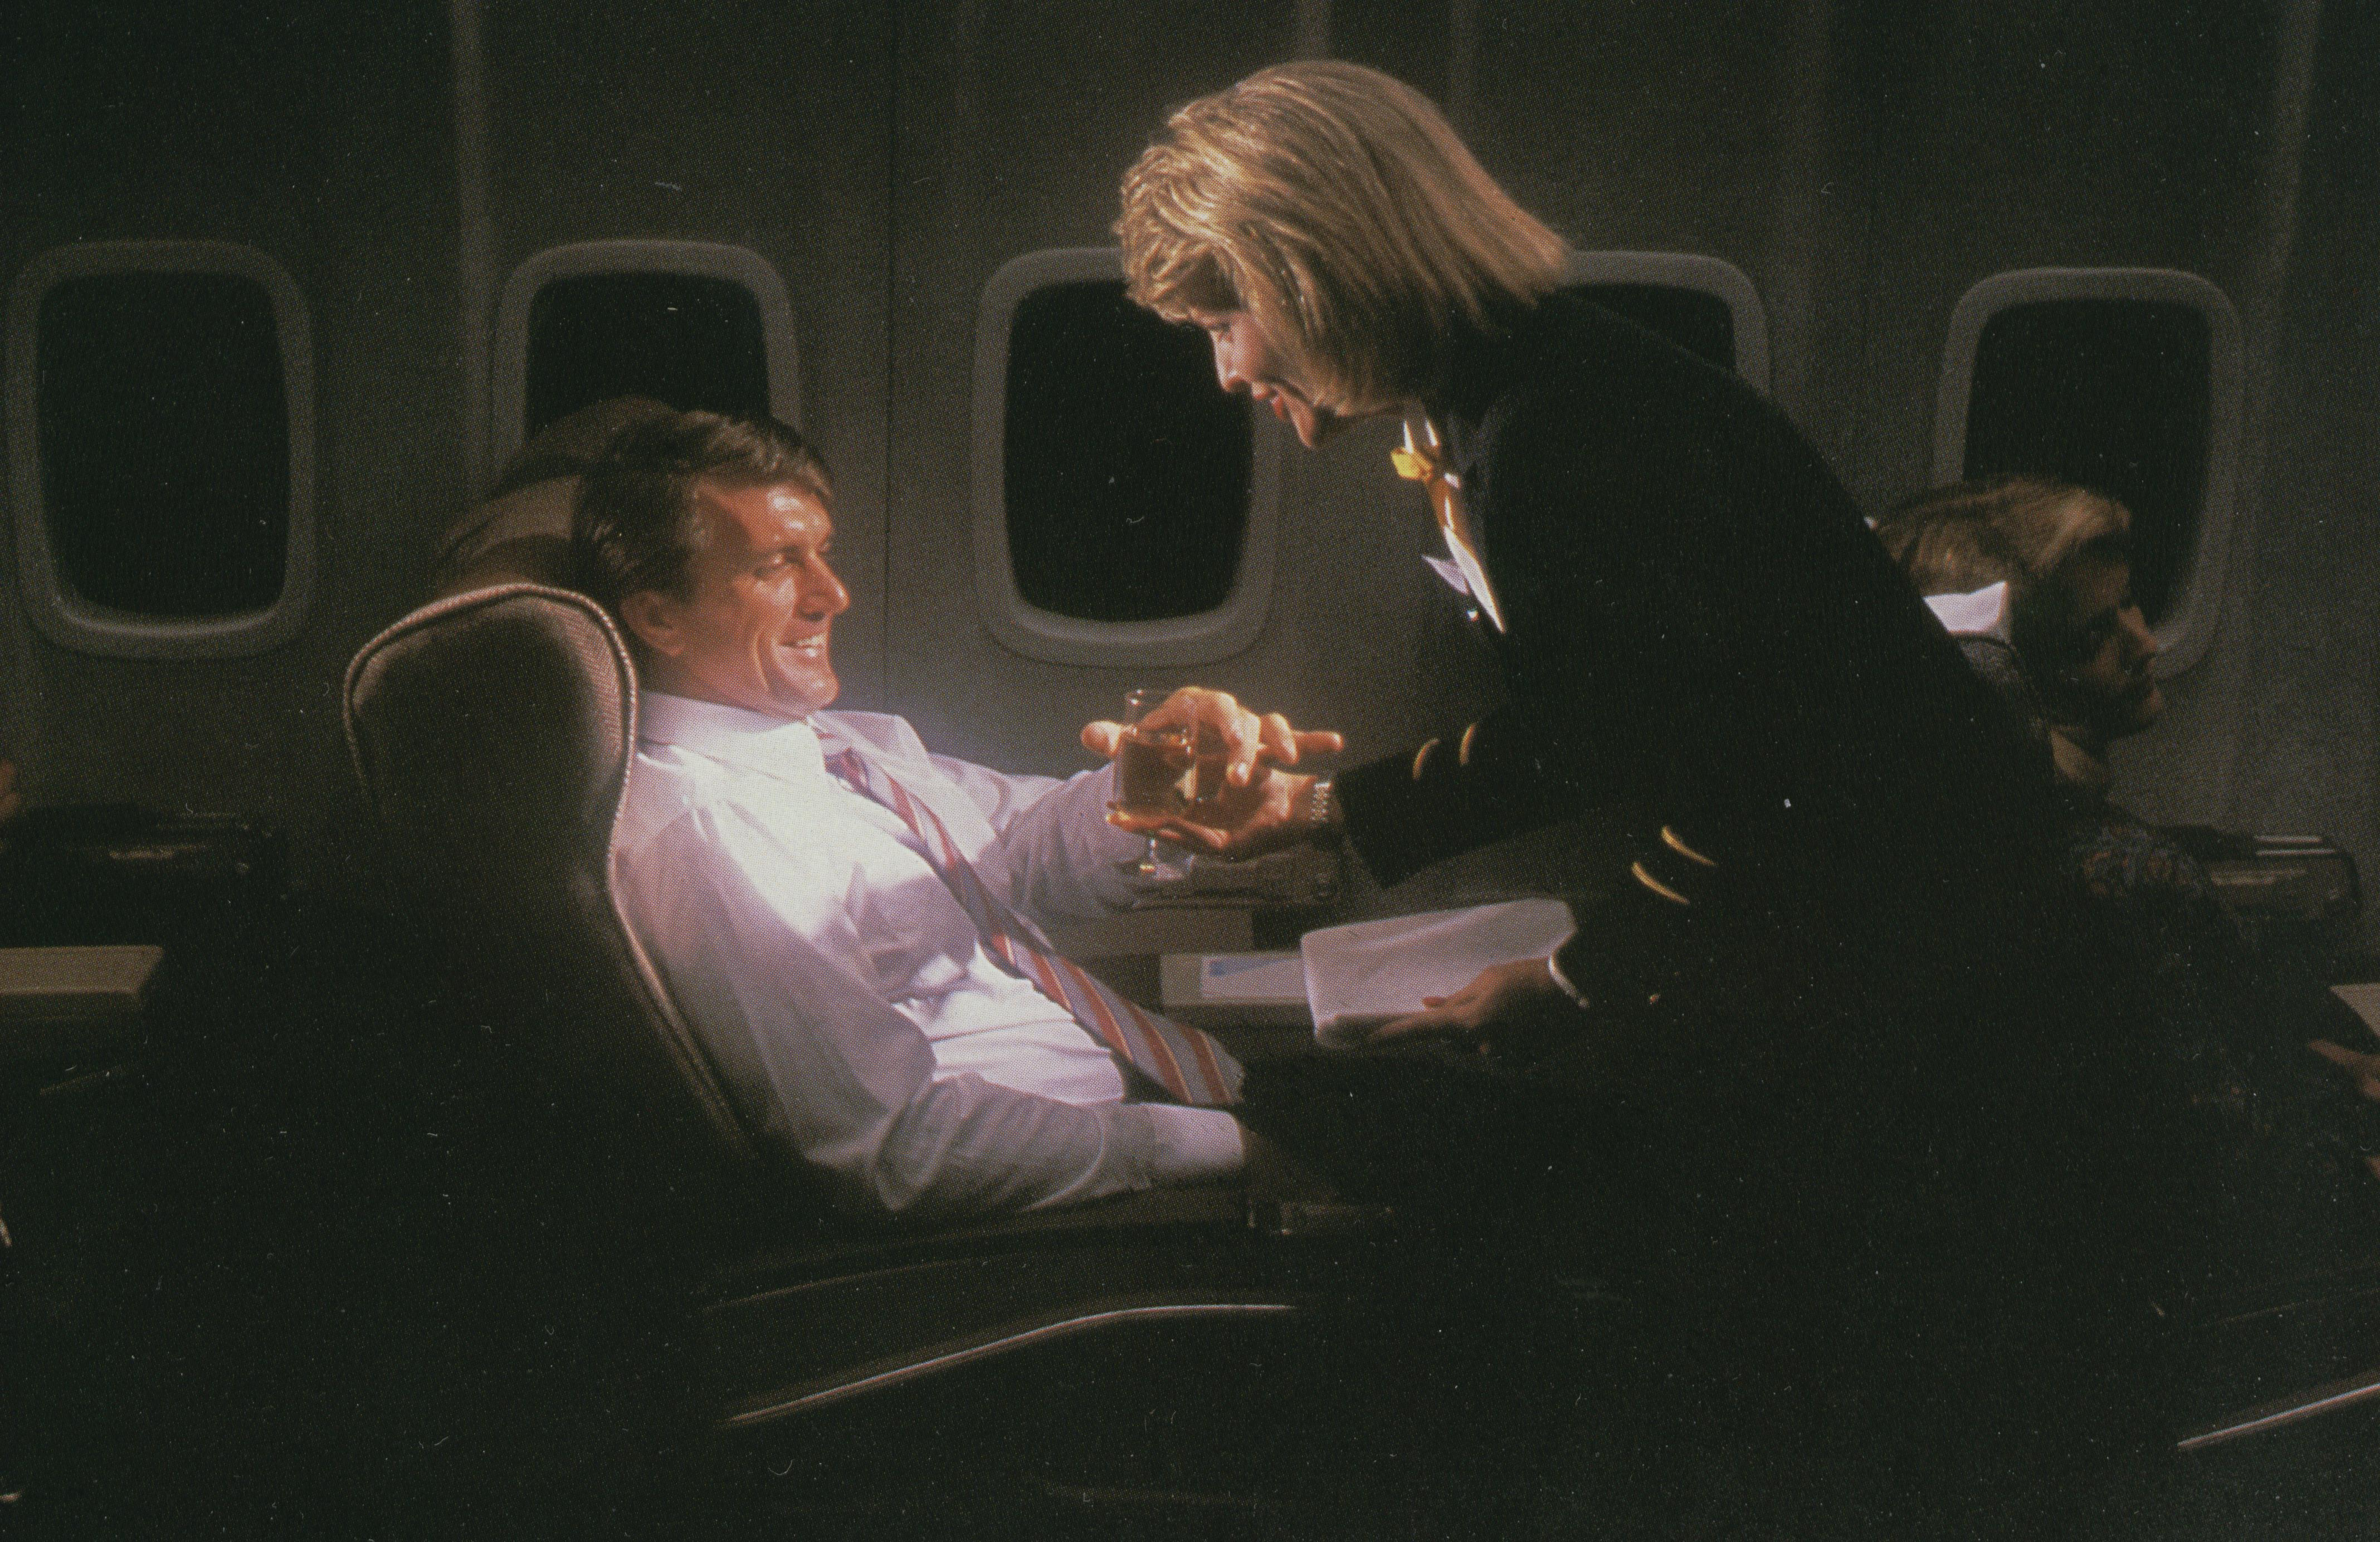 1980s A flight attendant serves a Clipper Class (business class) customer on an overnight flight.